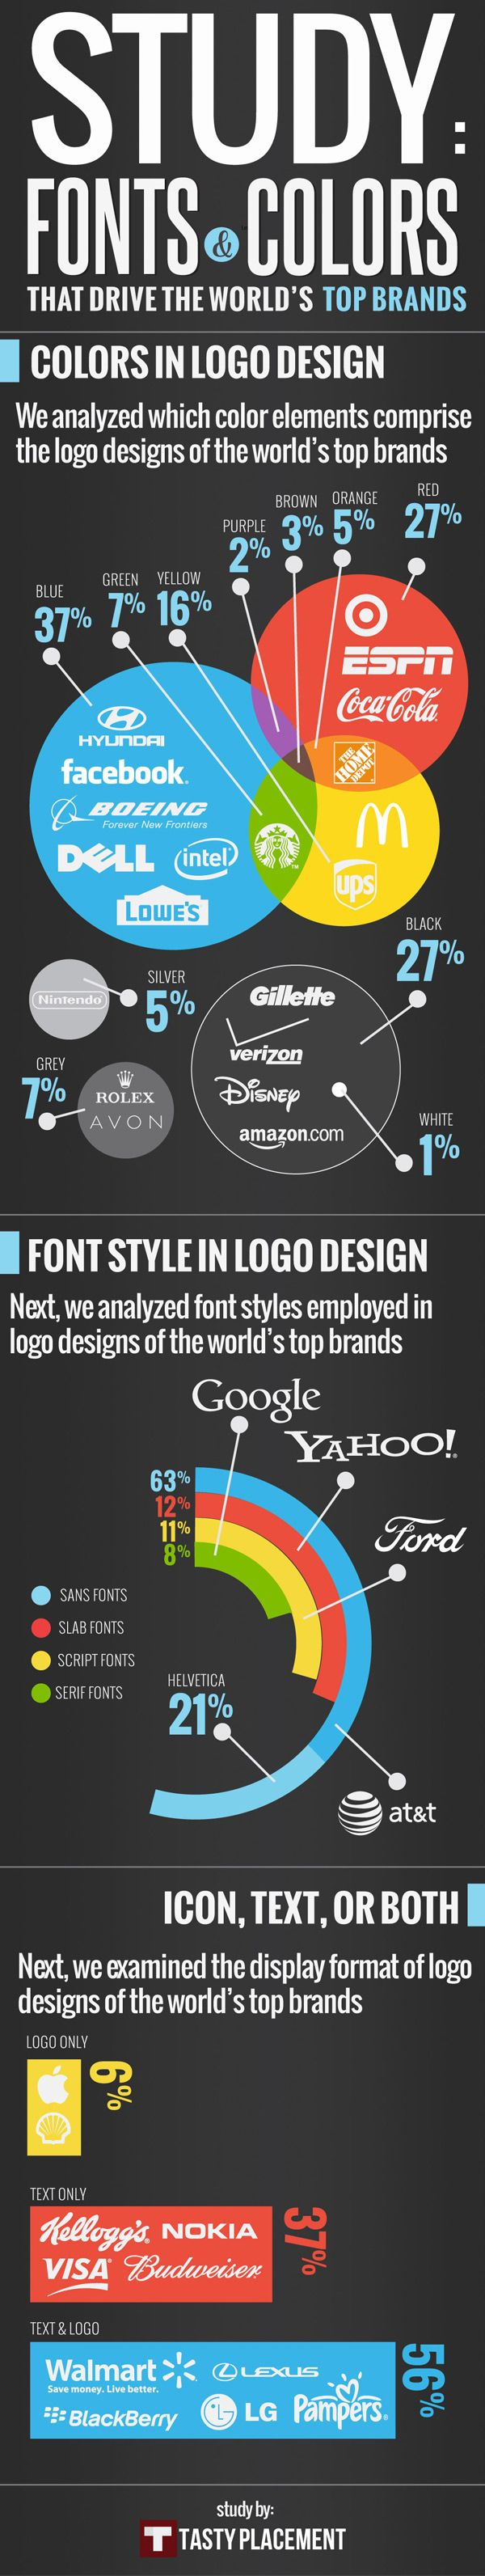 Fonts And Colors That Drive The World's Leaders: An Infographic